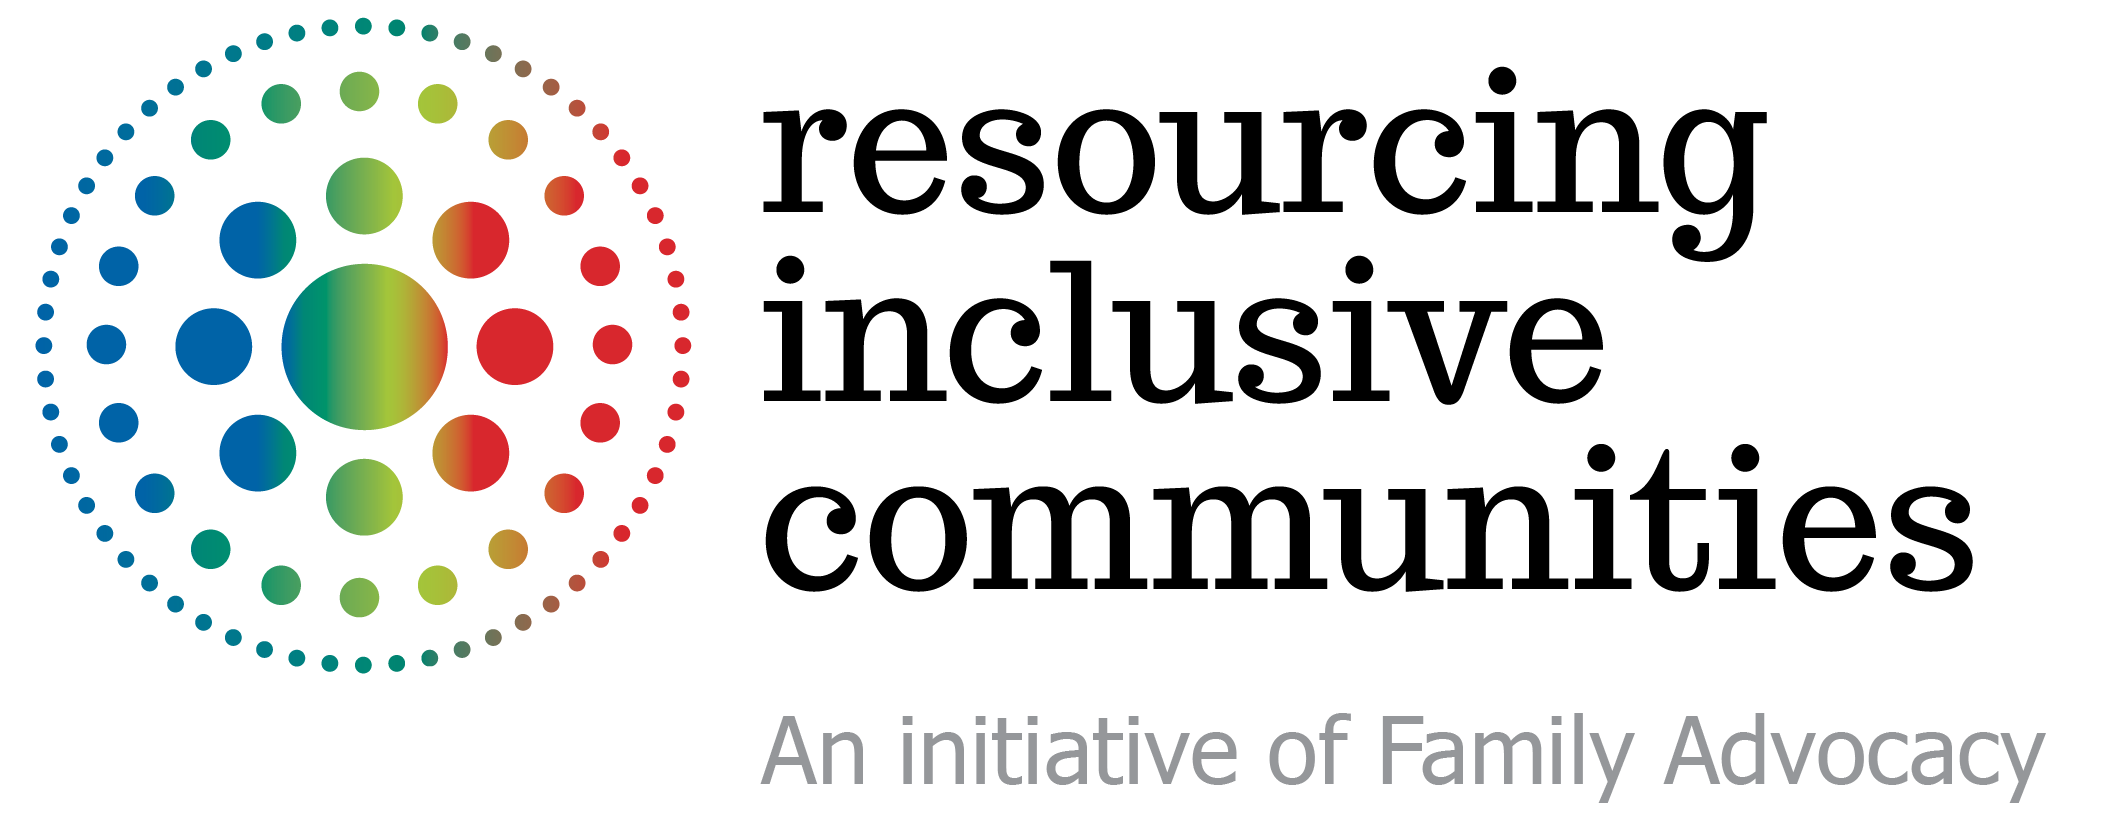 Resourcing Inclusive Communities